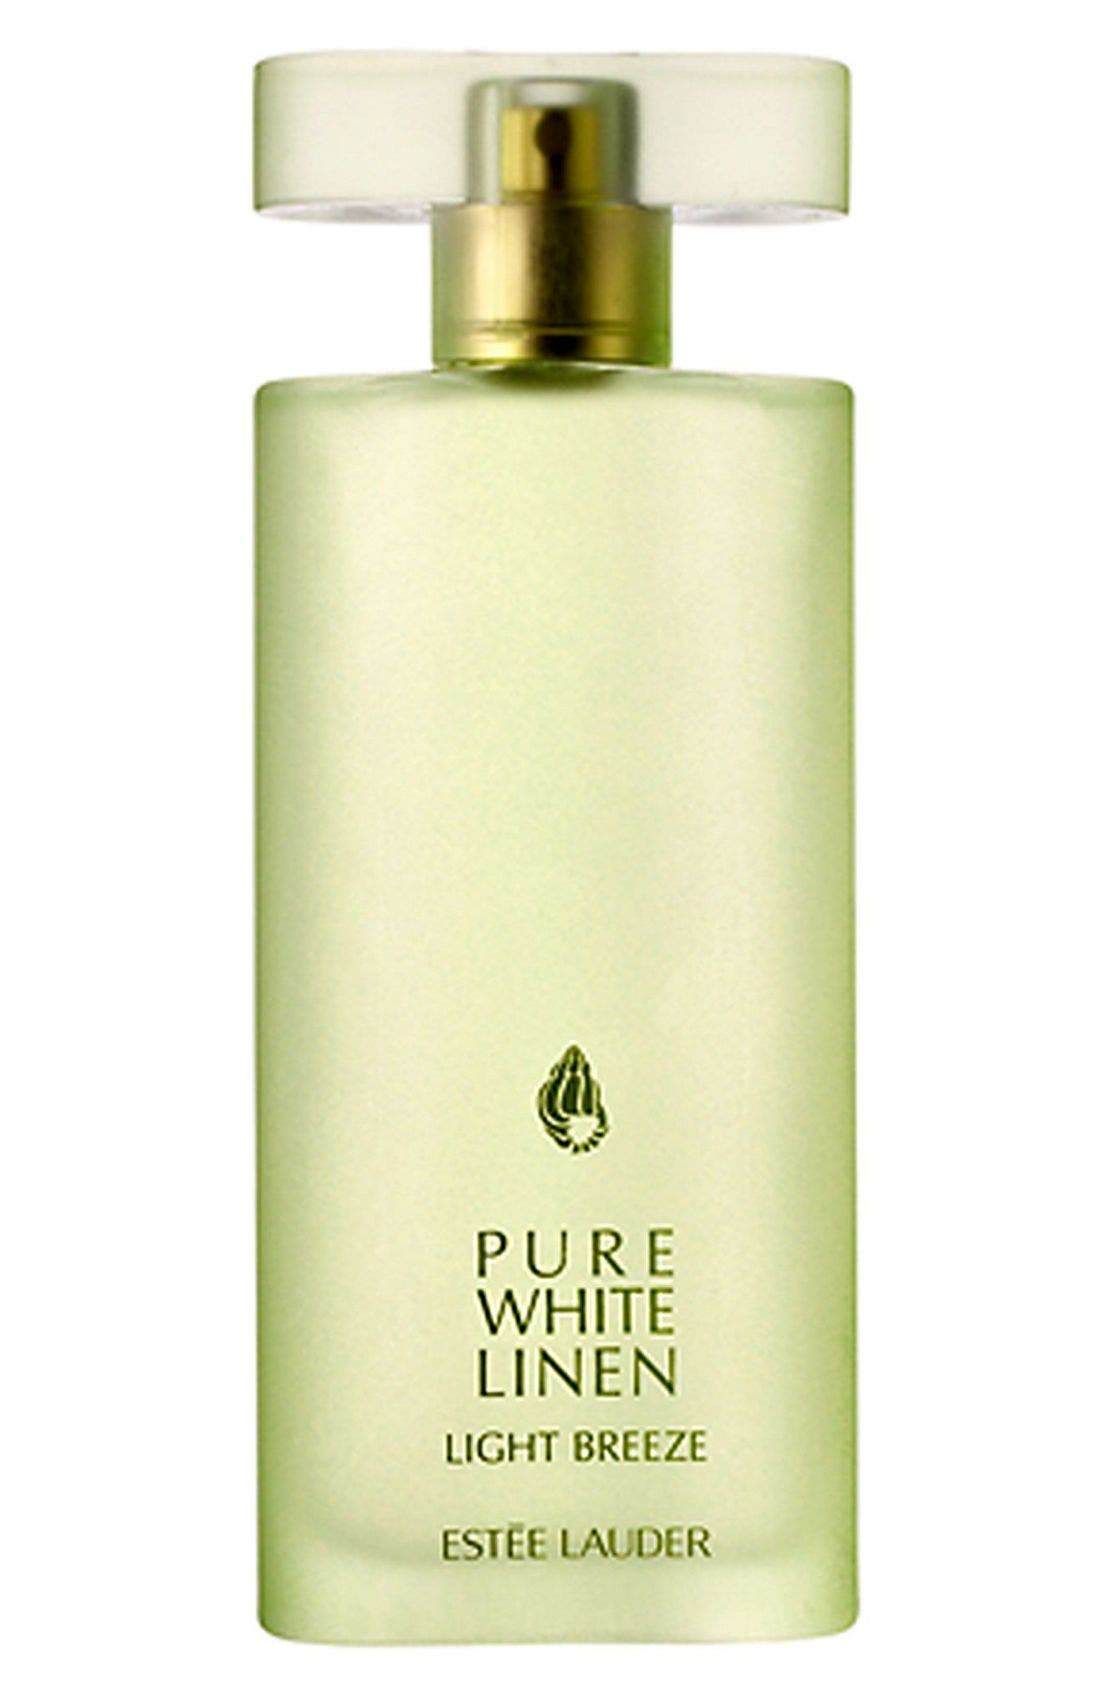 Pure White Linen - Light Breeze Eau de Parfum Spray,                         Main,                         color, NO COLOR